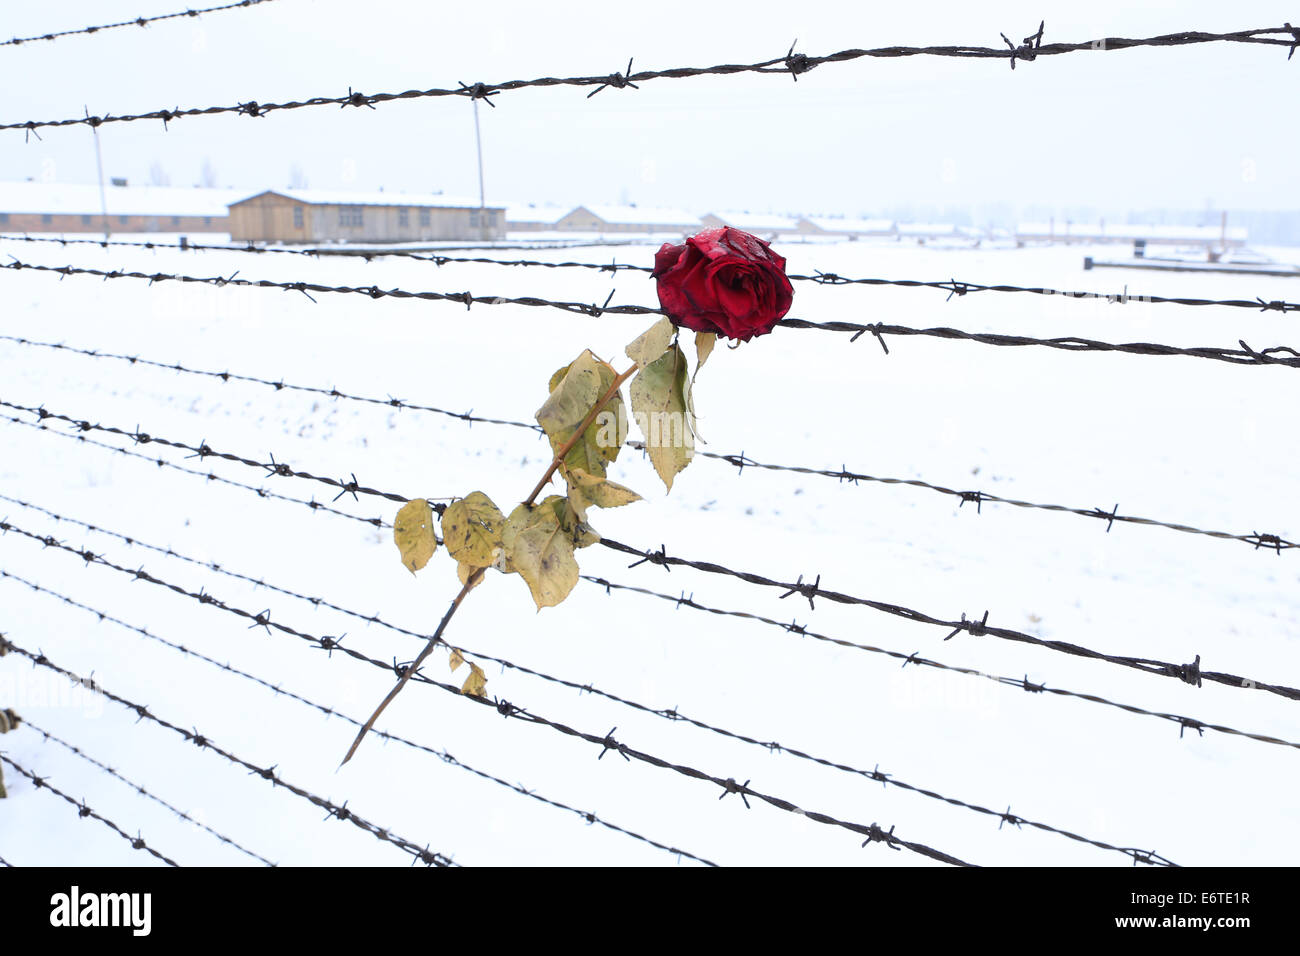 Auschwitz-Birkenau concentration and extermination camp in Winter - Stock Image